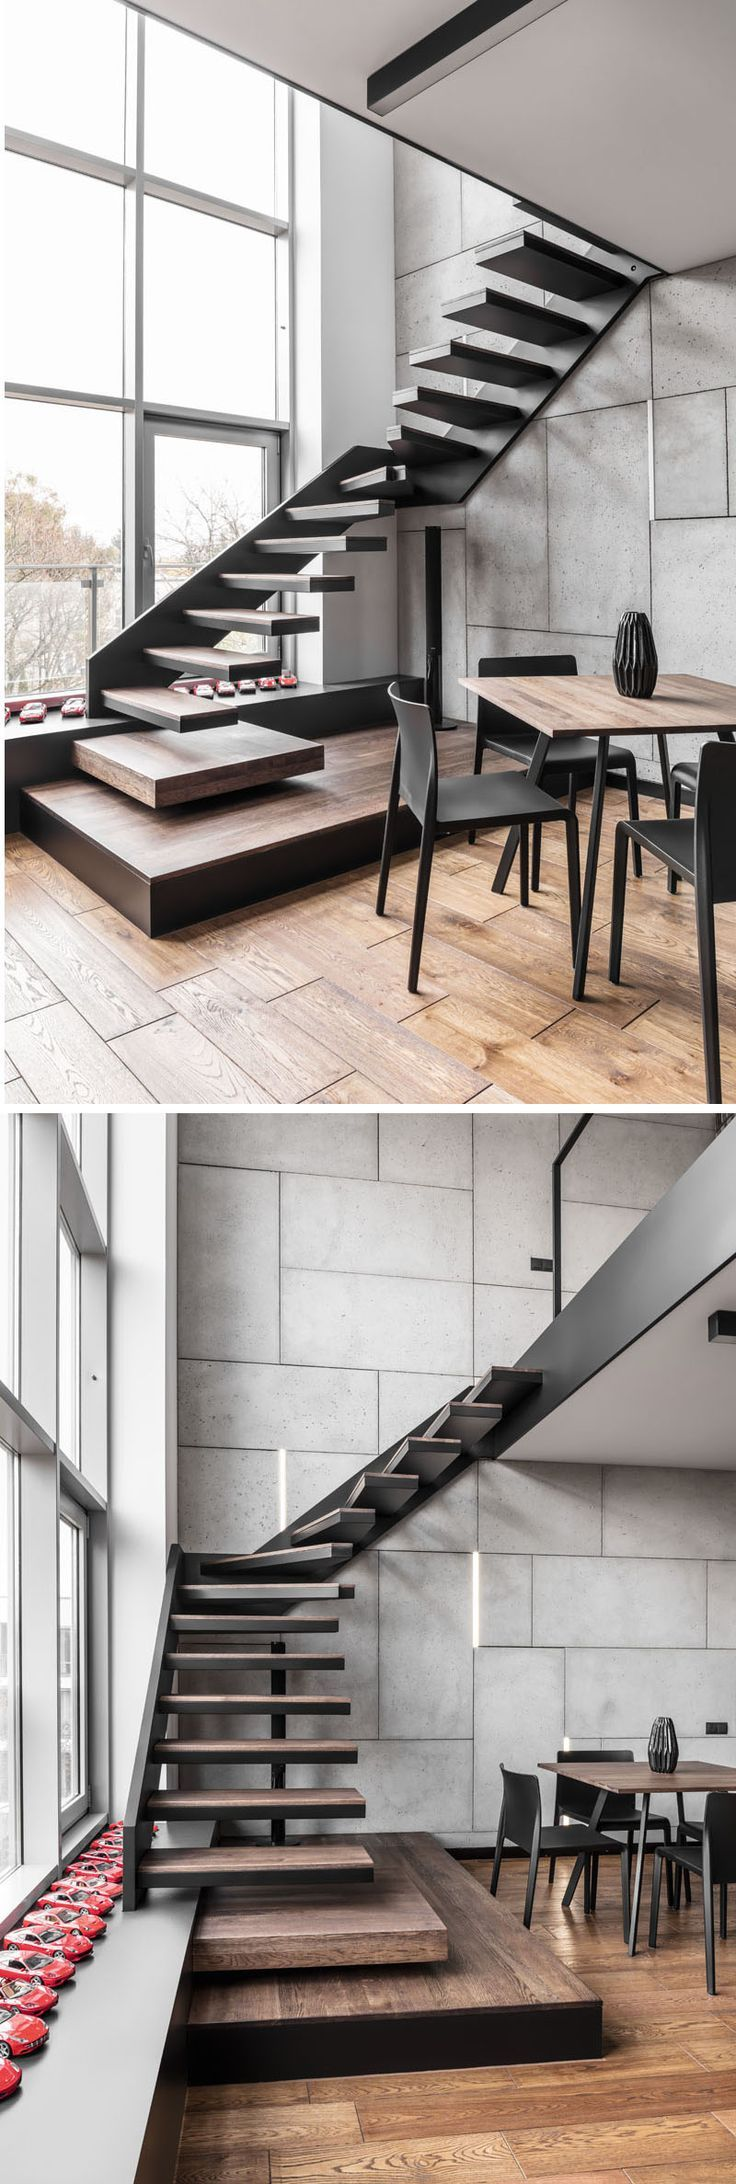 2932 best architecture images on Pinterest | Architecture, About ...